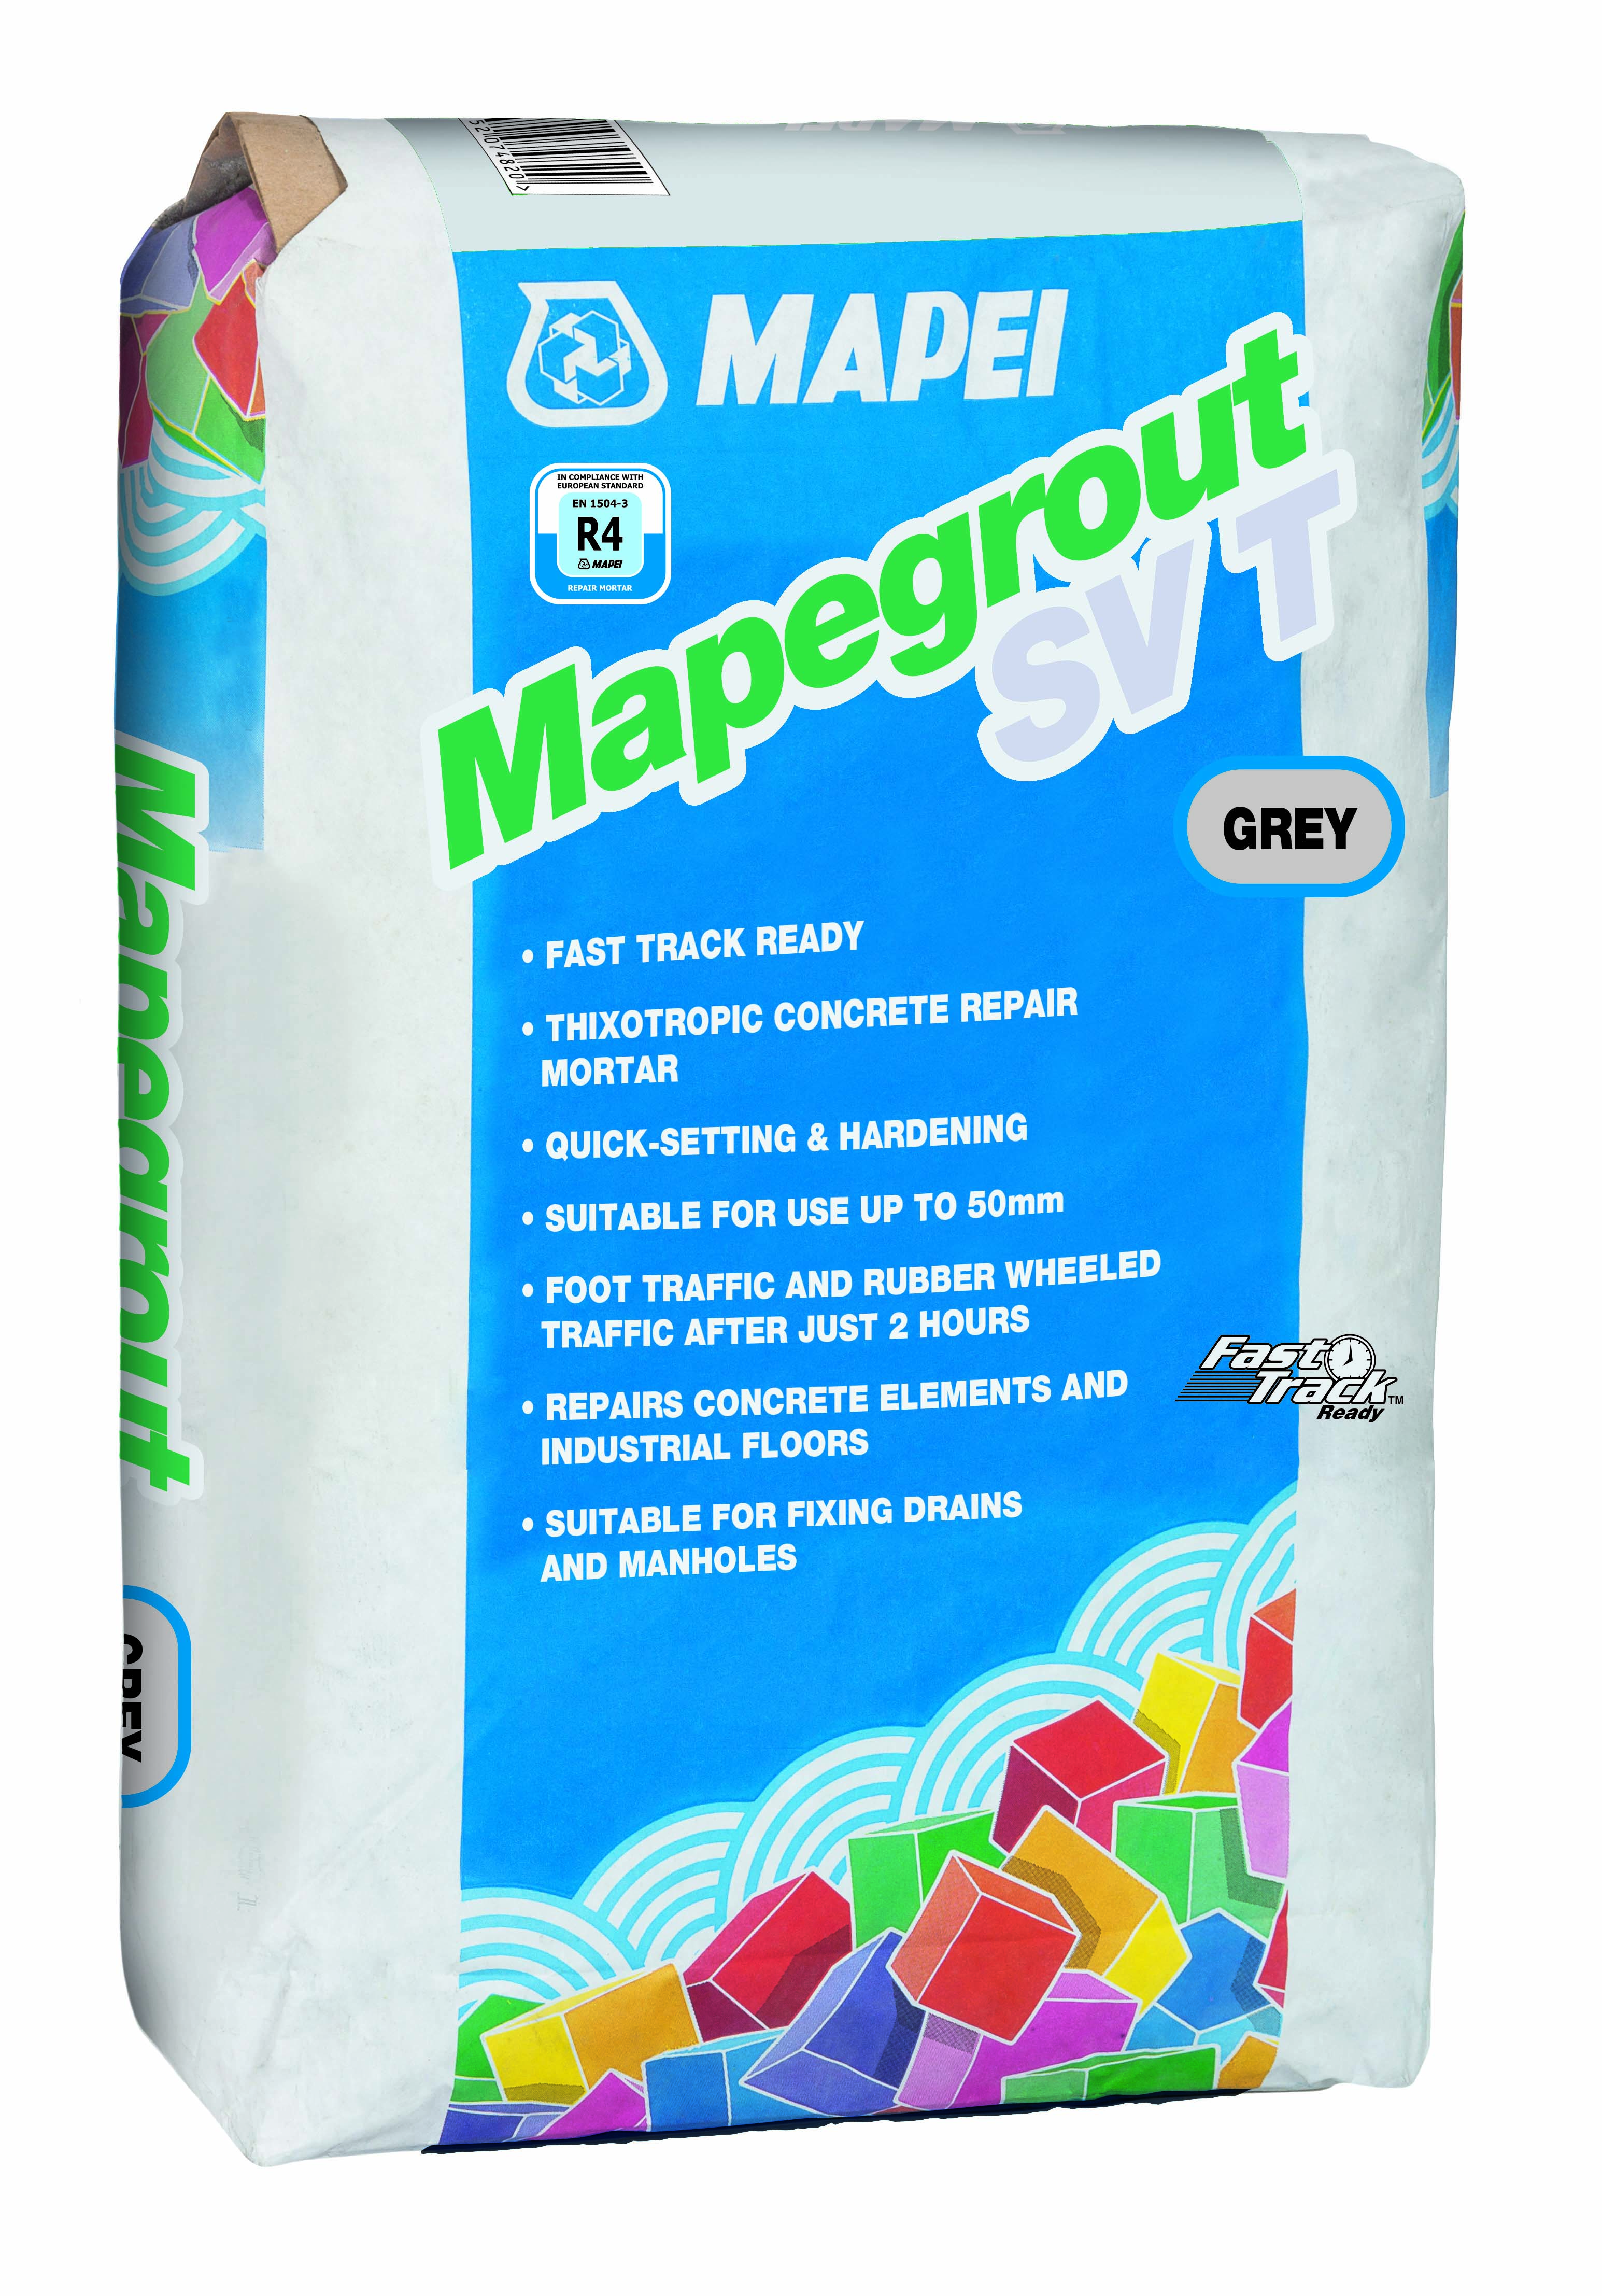 Mapegrout SV T - Packaging Image